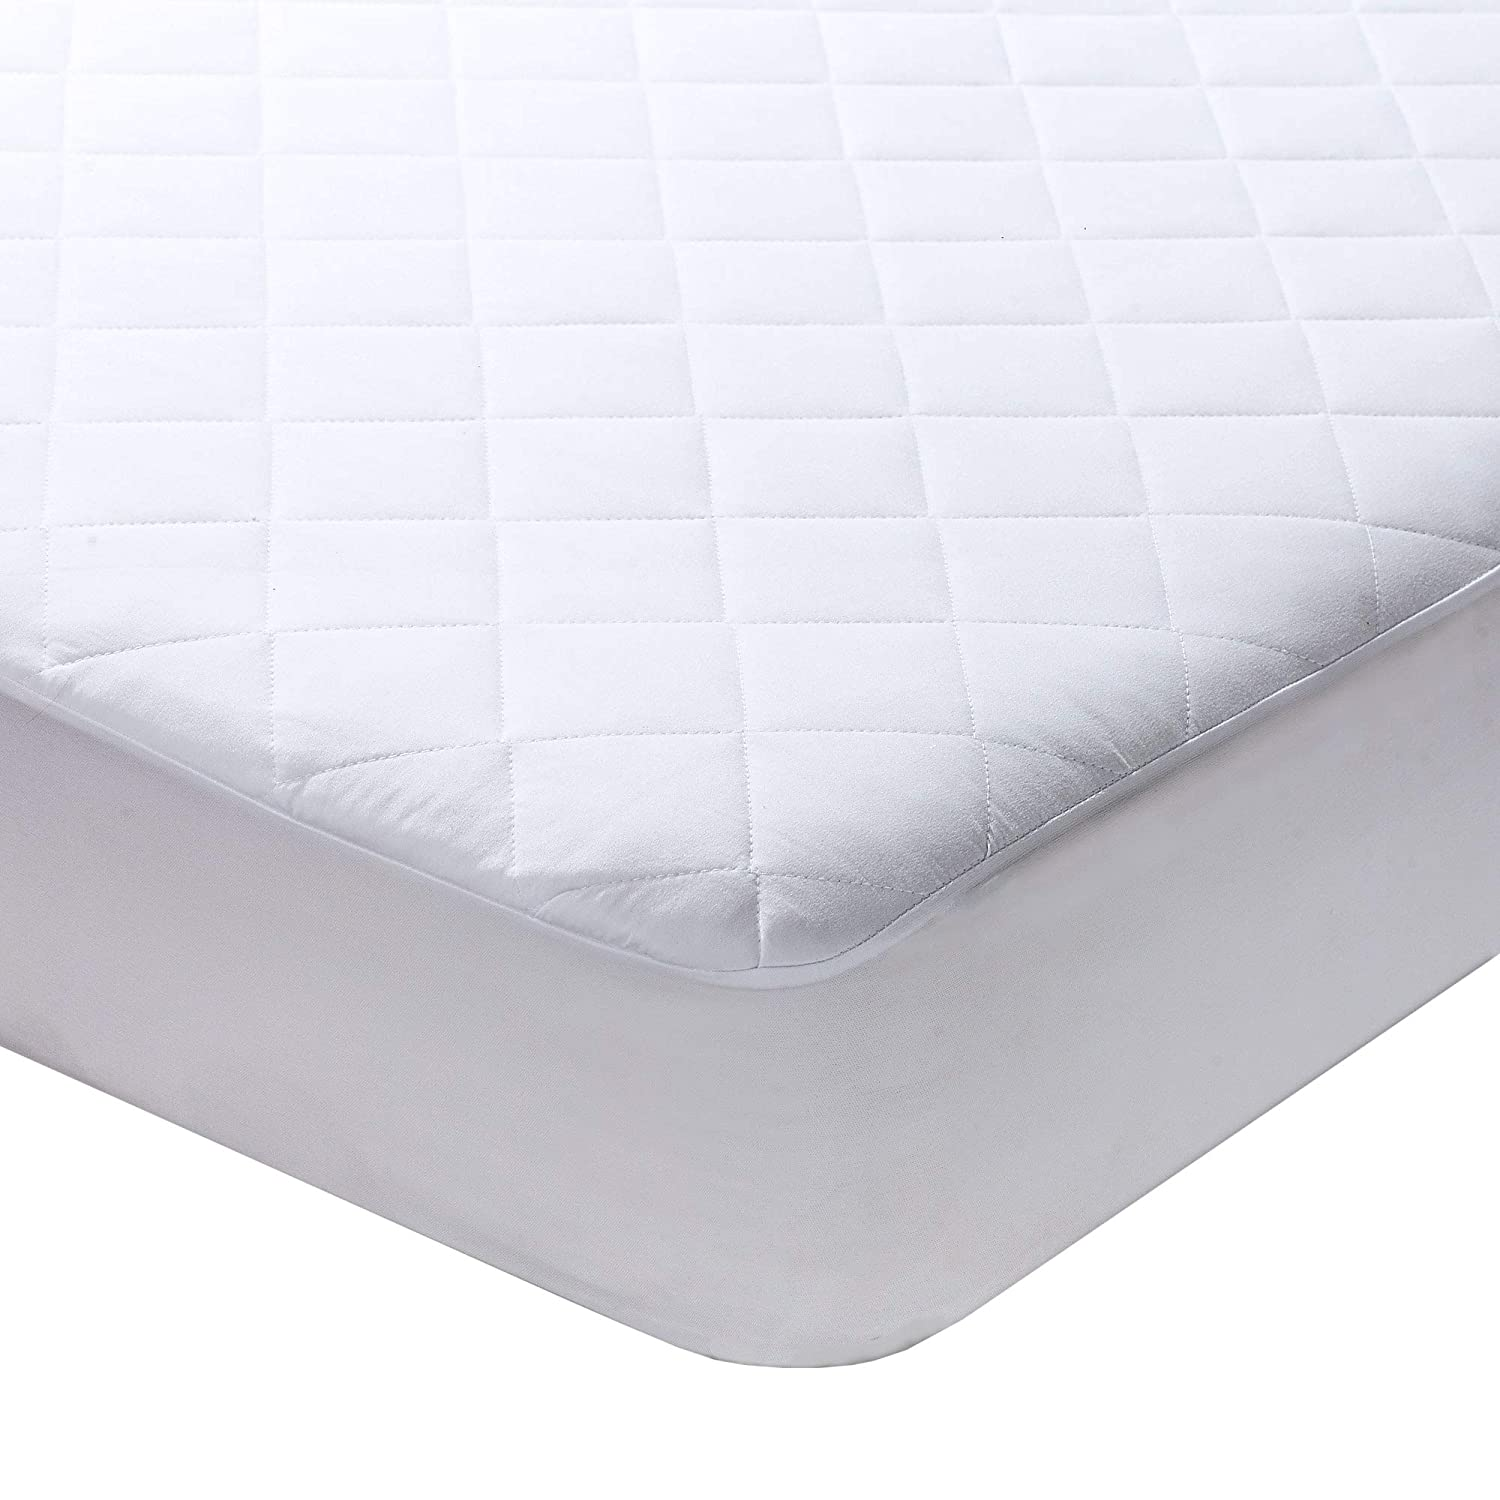 Milddreams Twin Mattress Pad Protector Topper Cover - Twin Size Bed Pad (39x75 inches + Stretches to 16